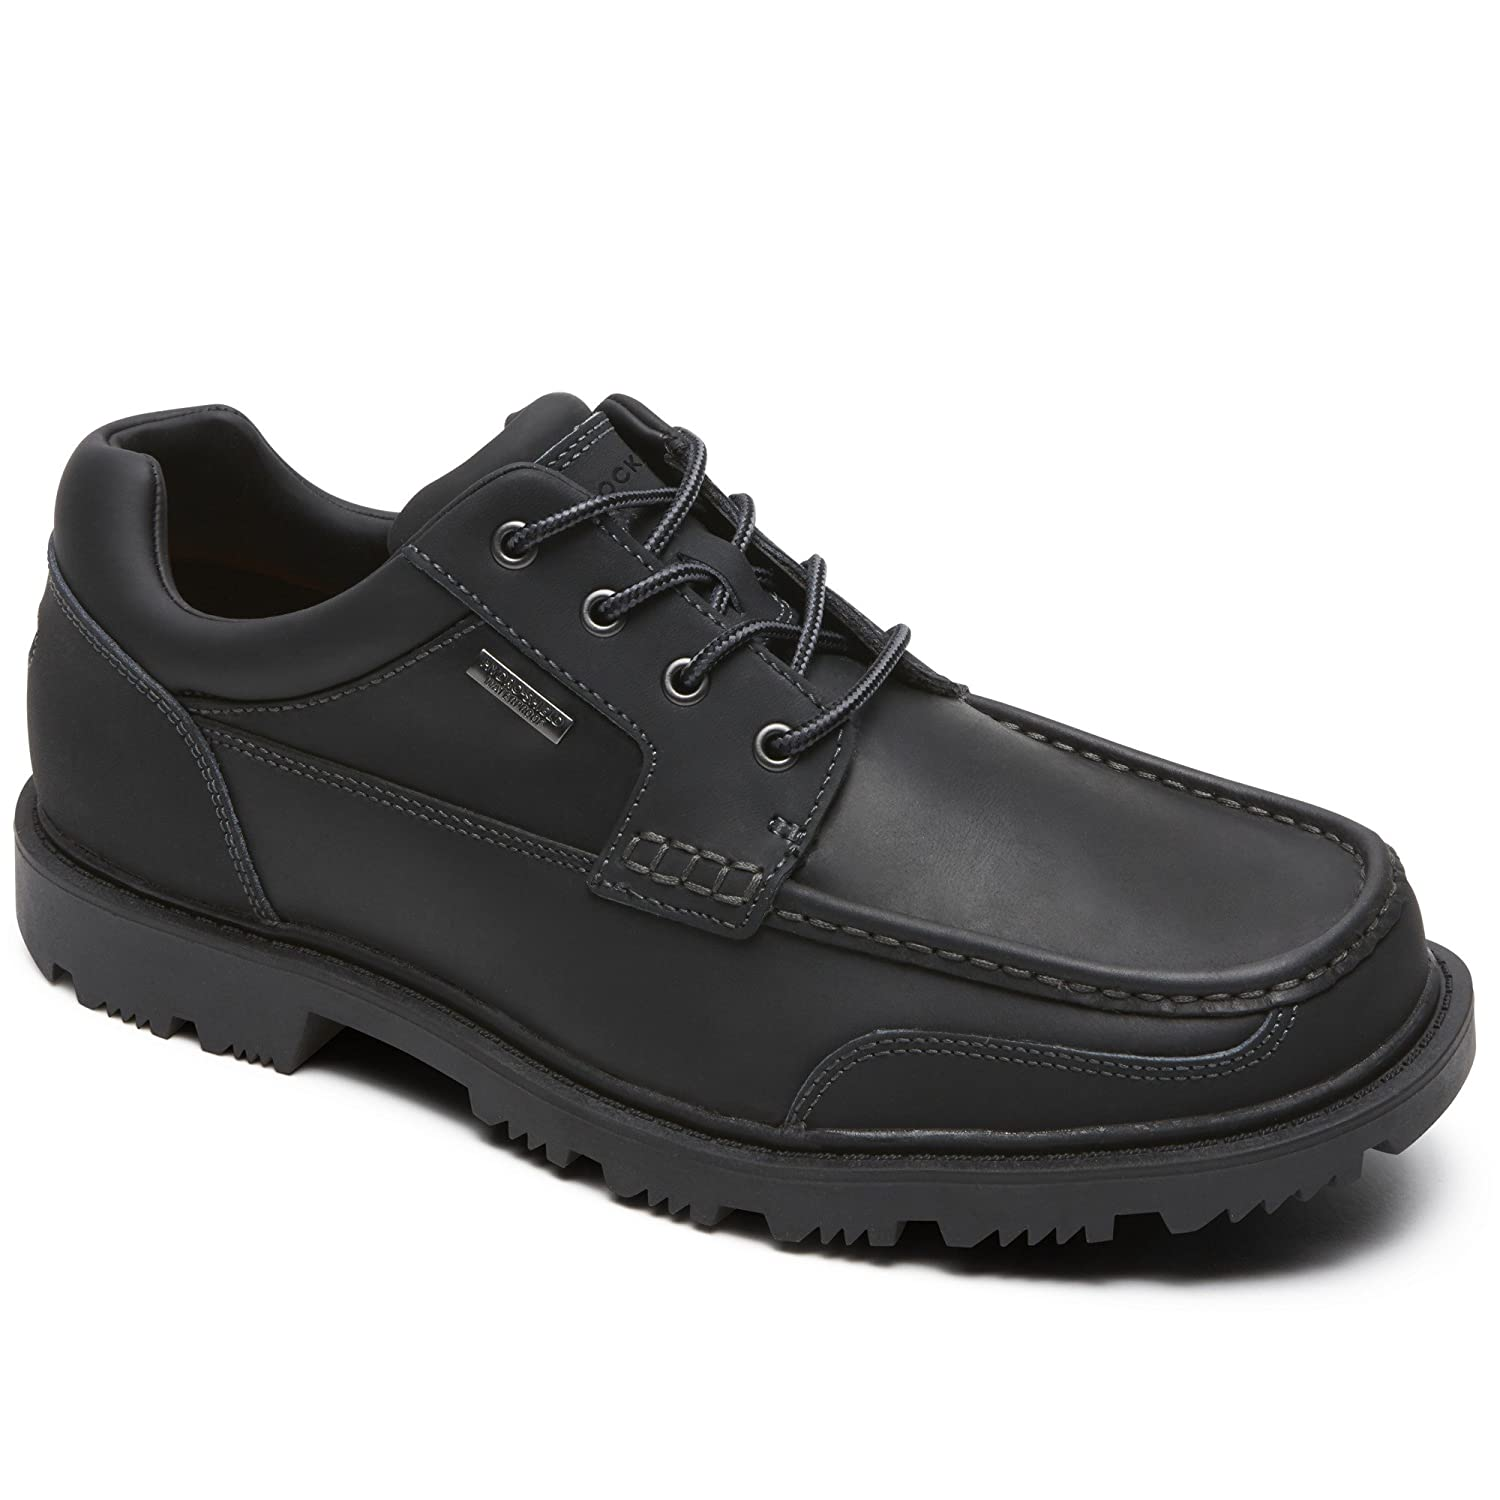 Rockport Redemption Road Moc Toe, Mocasines para Hombre 49 EU|Negro (Black)